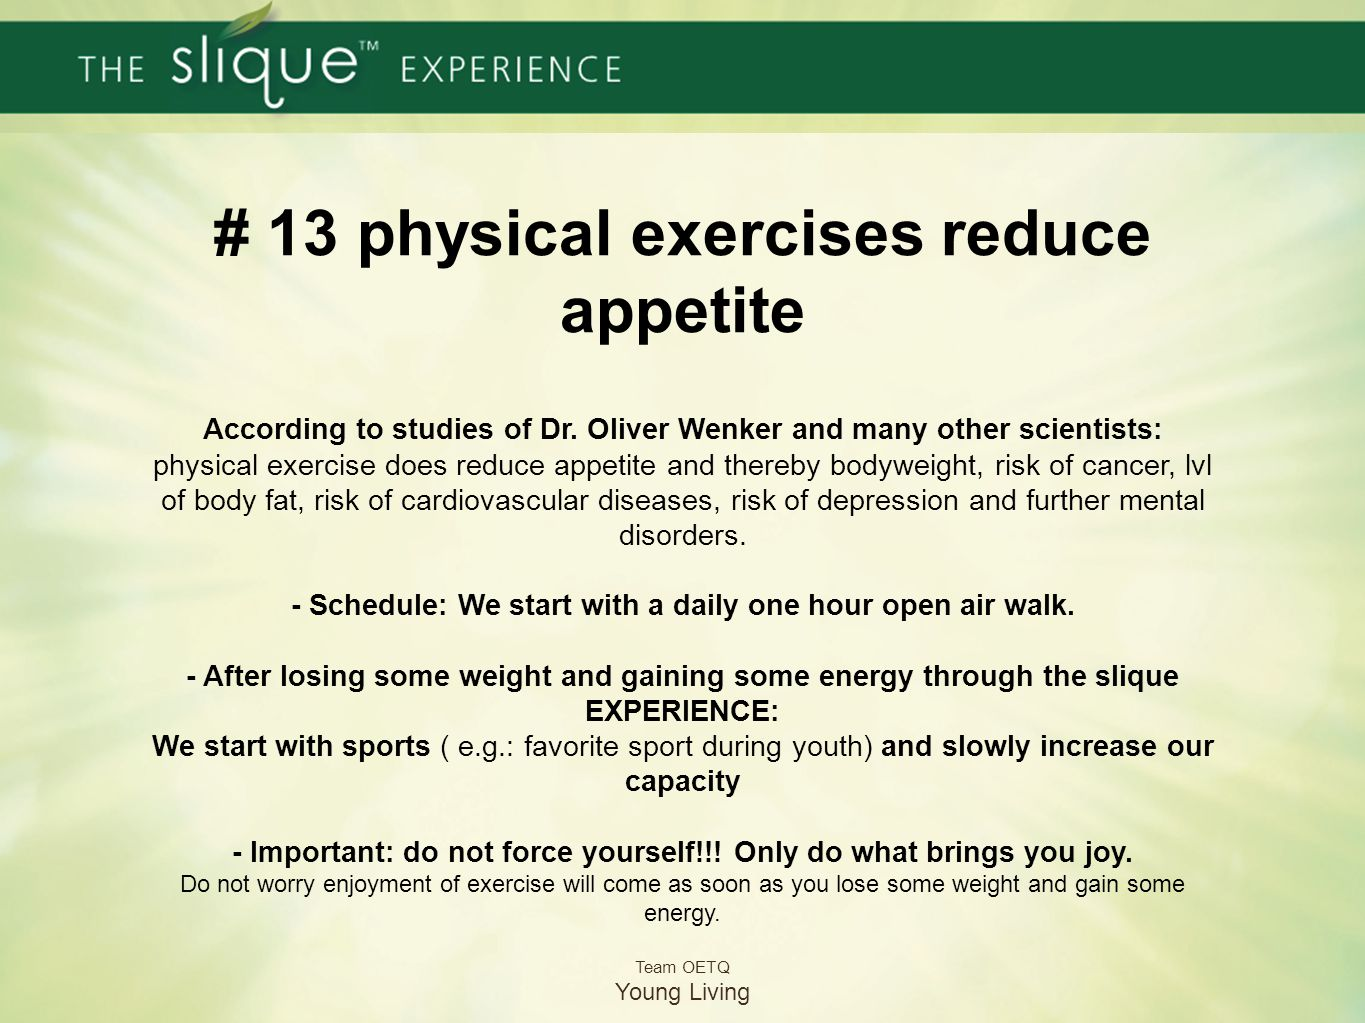 # 13 physical exercises reduce appetite